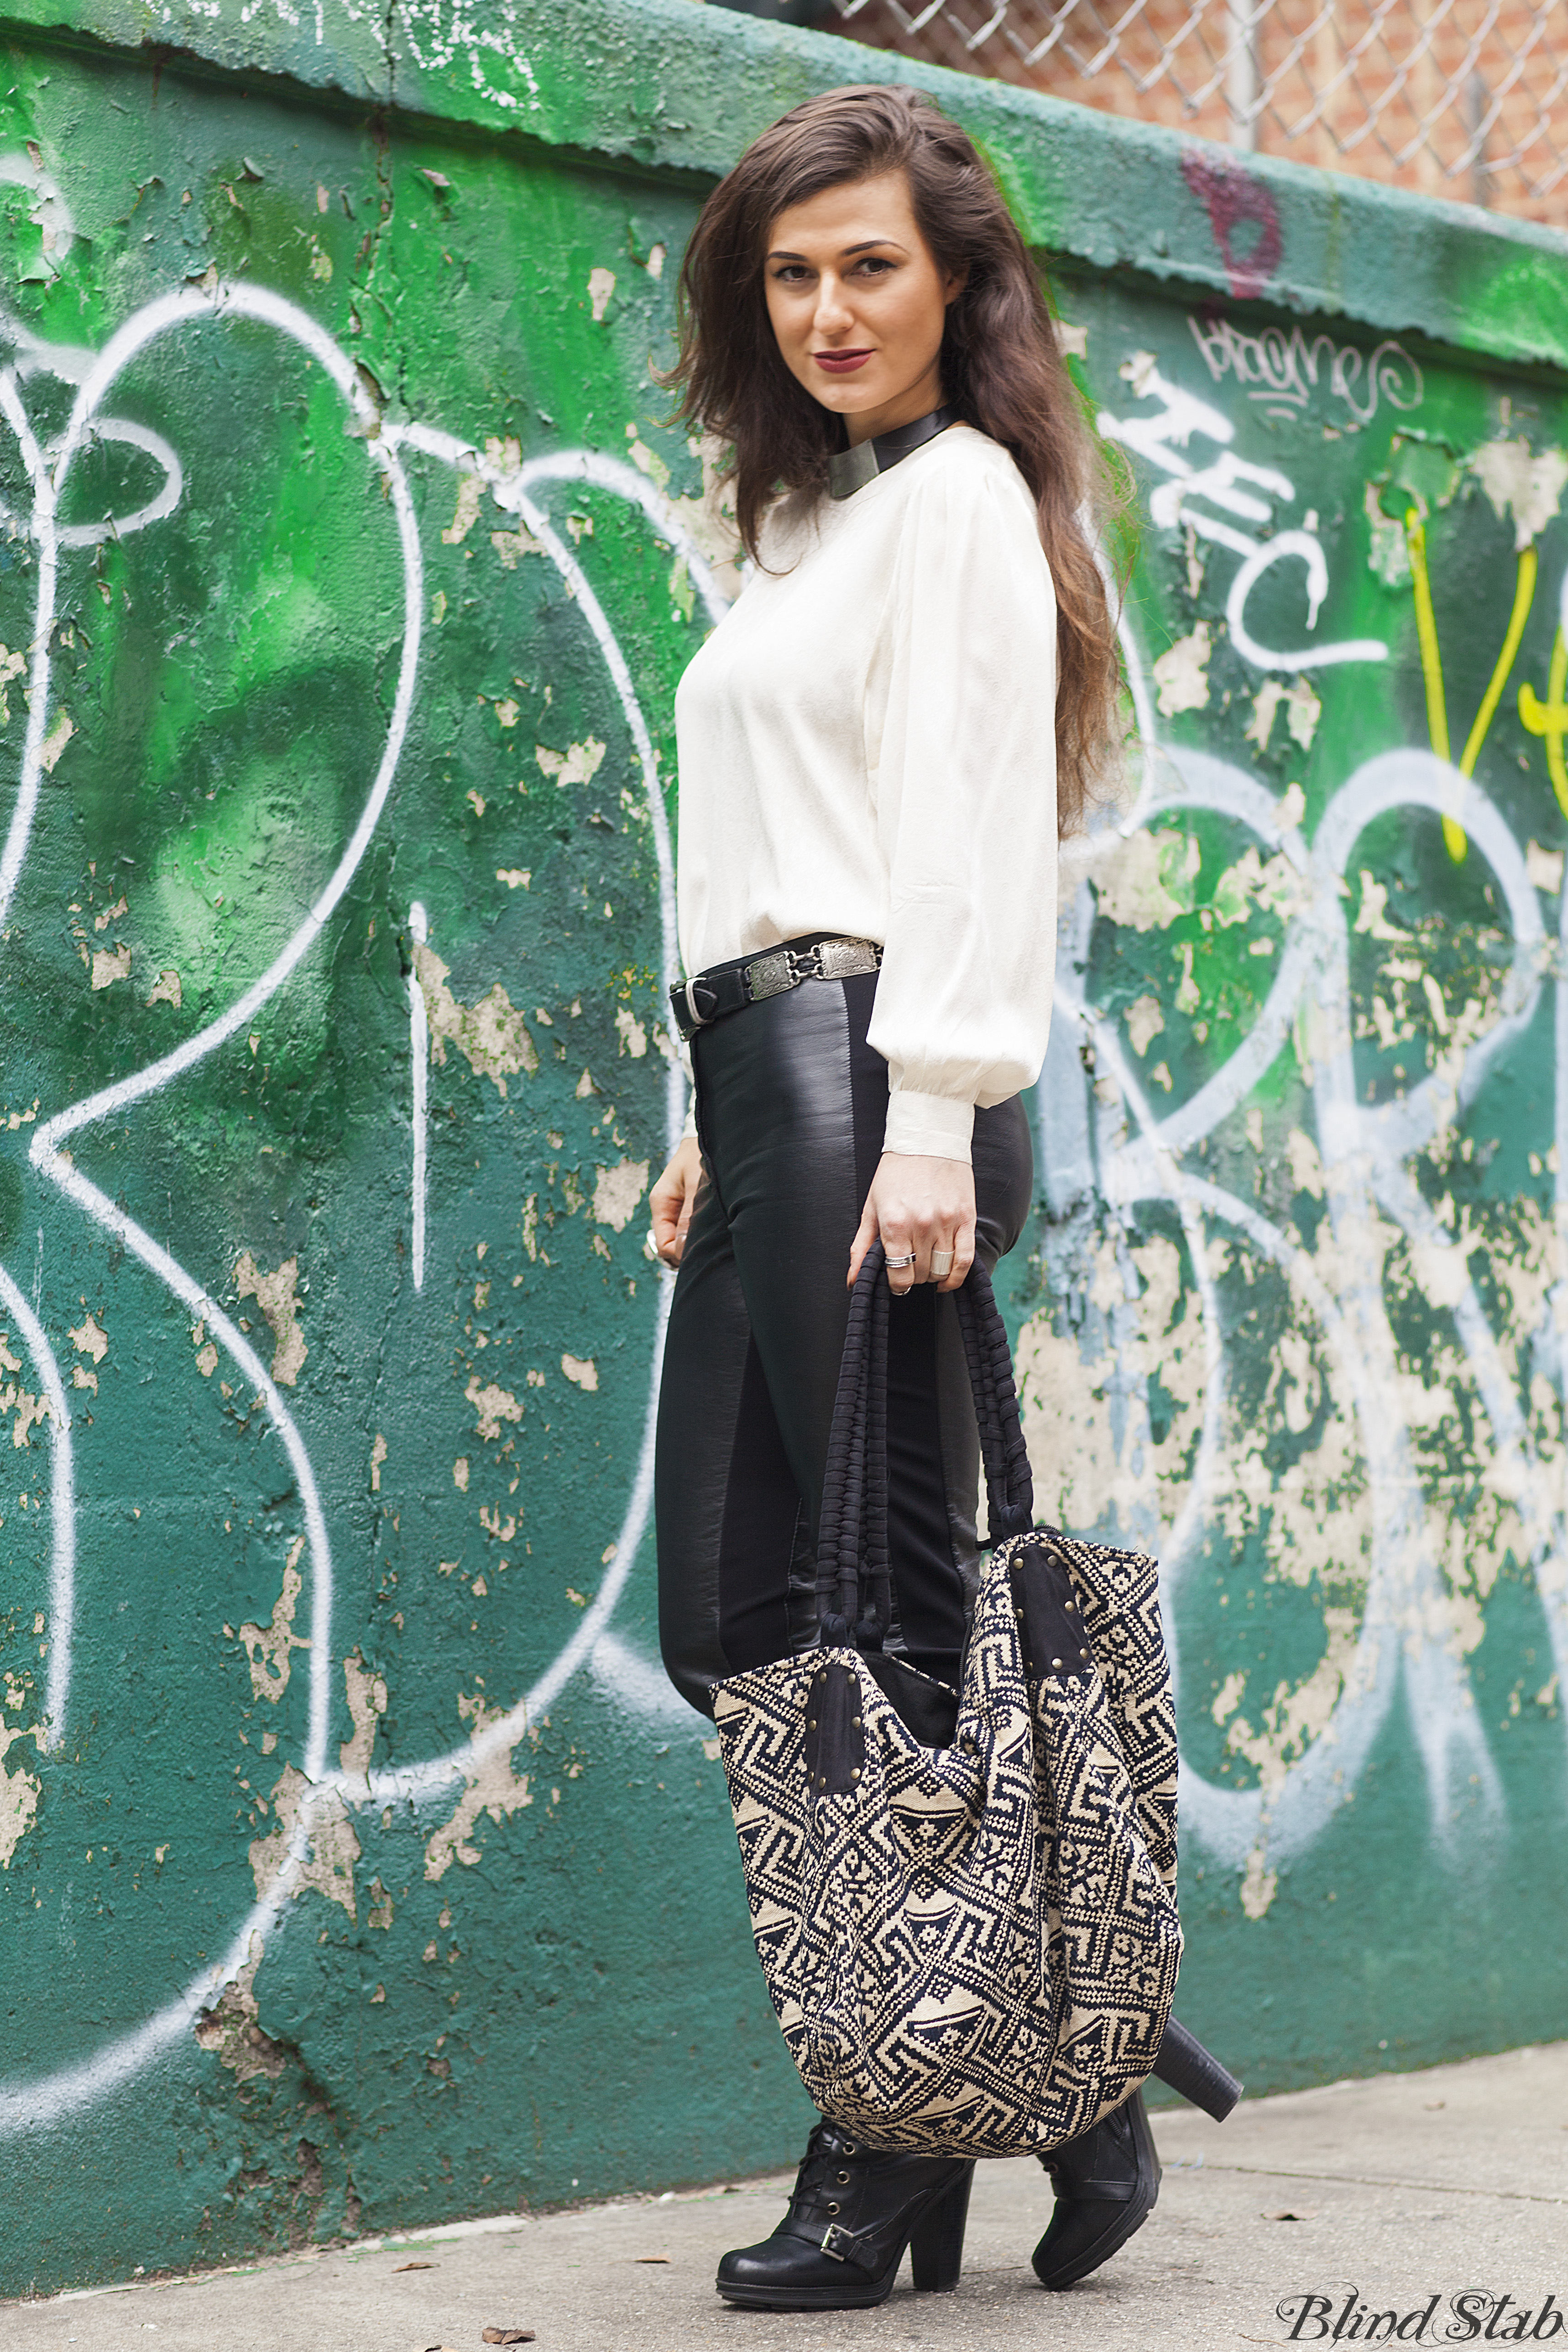 Leather-Pants-Long-Hair-Rocker-Style